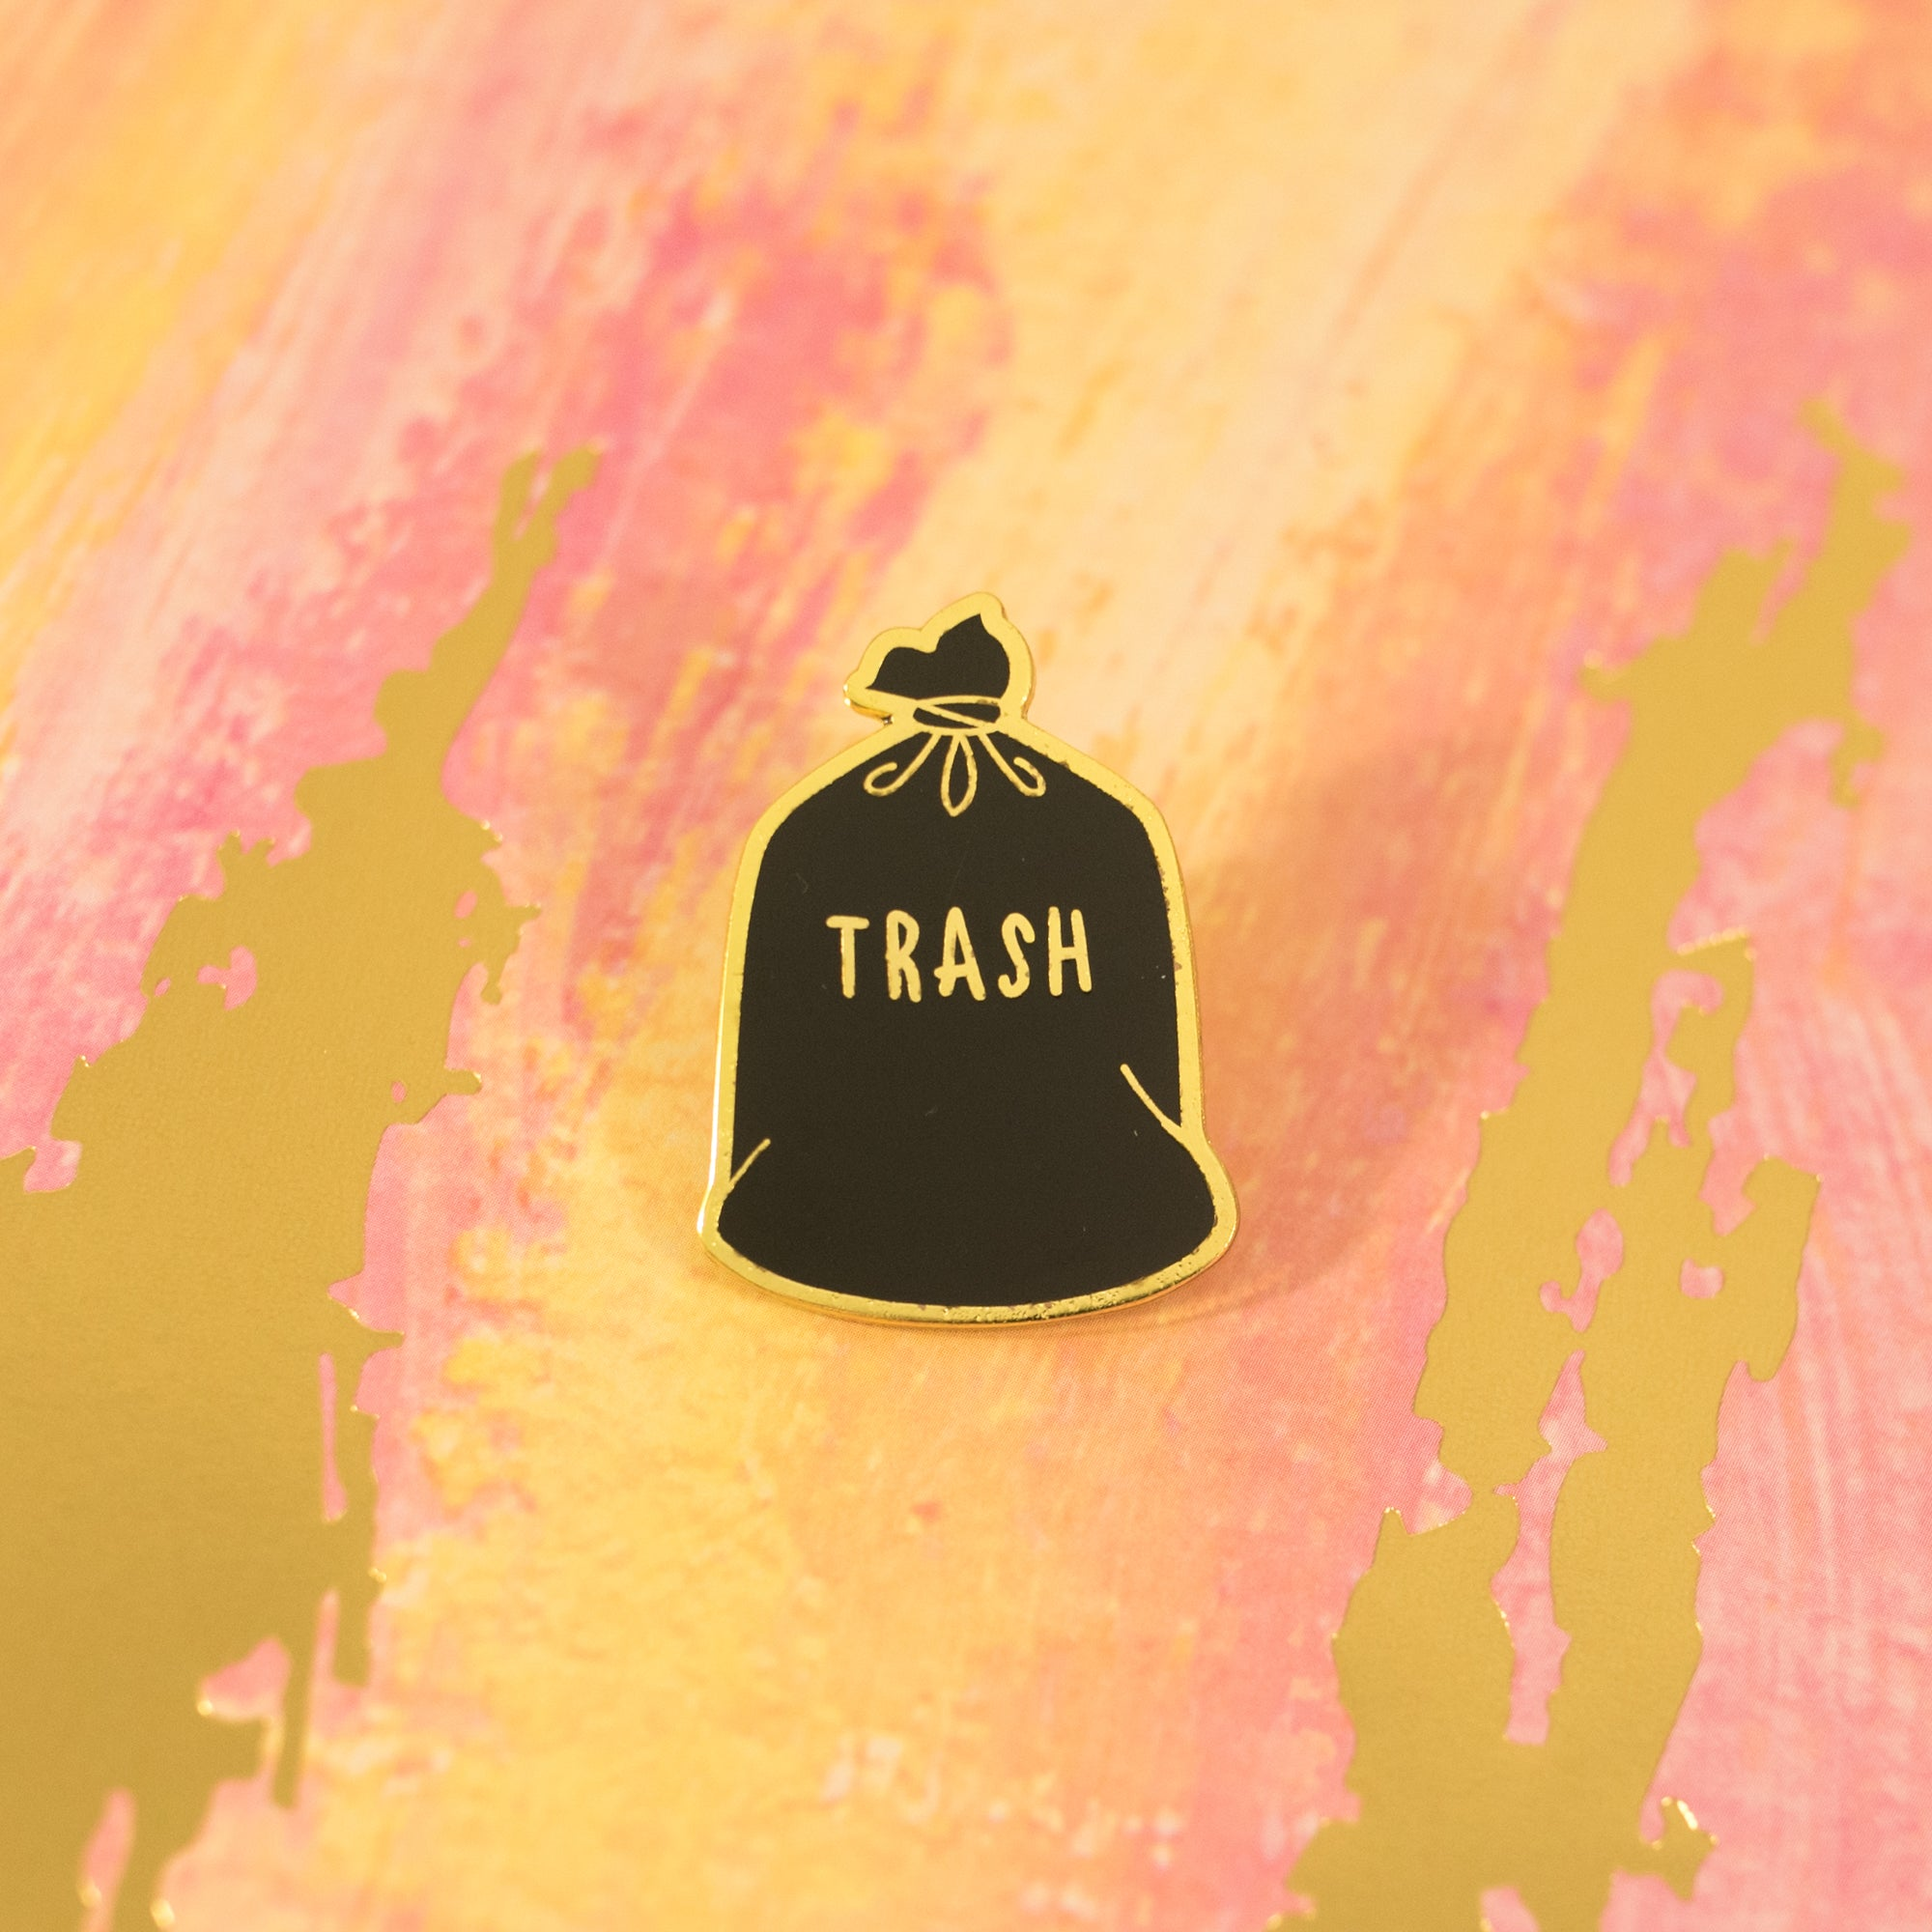 Trash pin